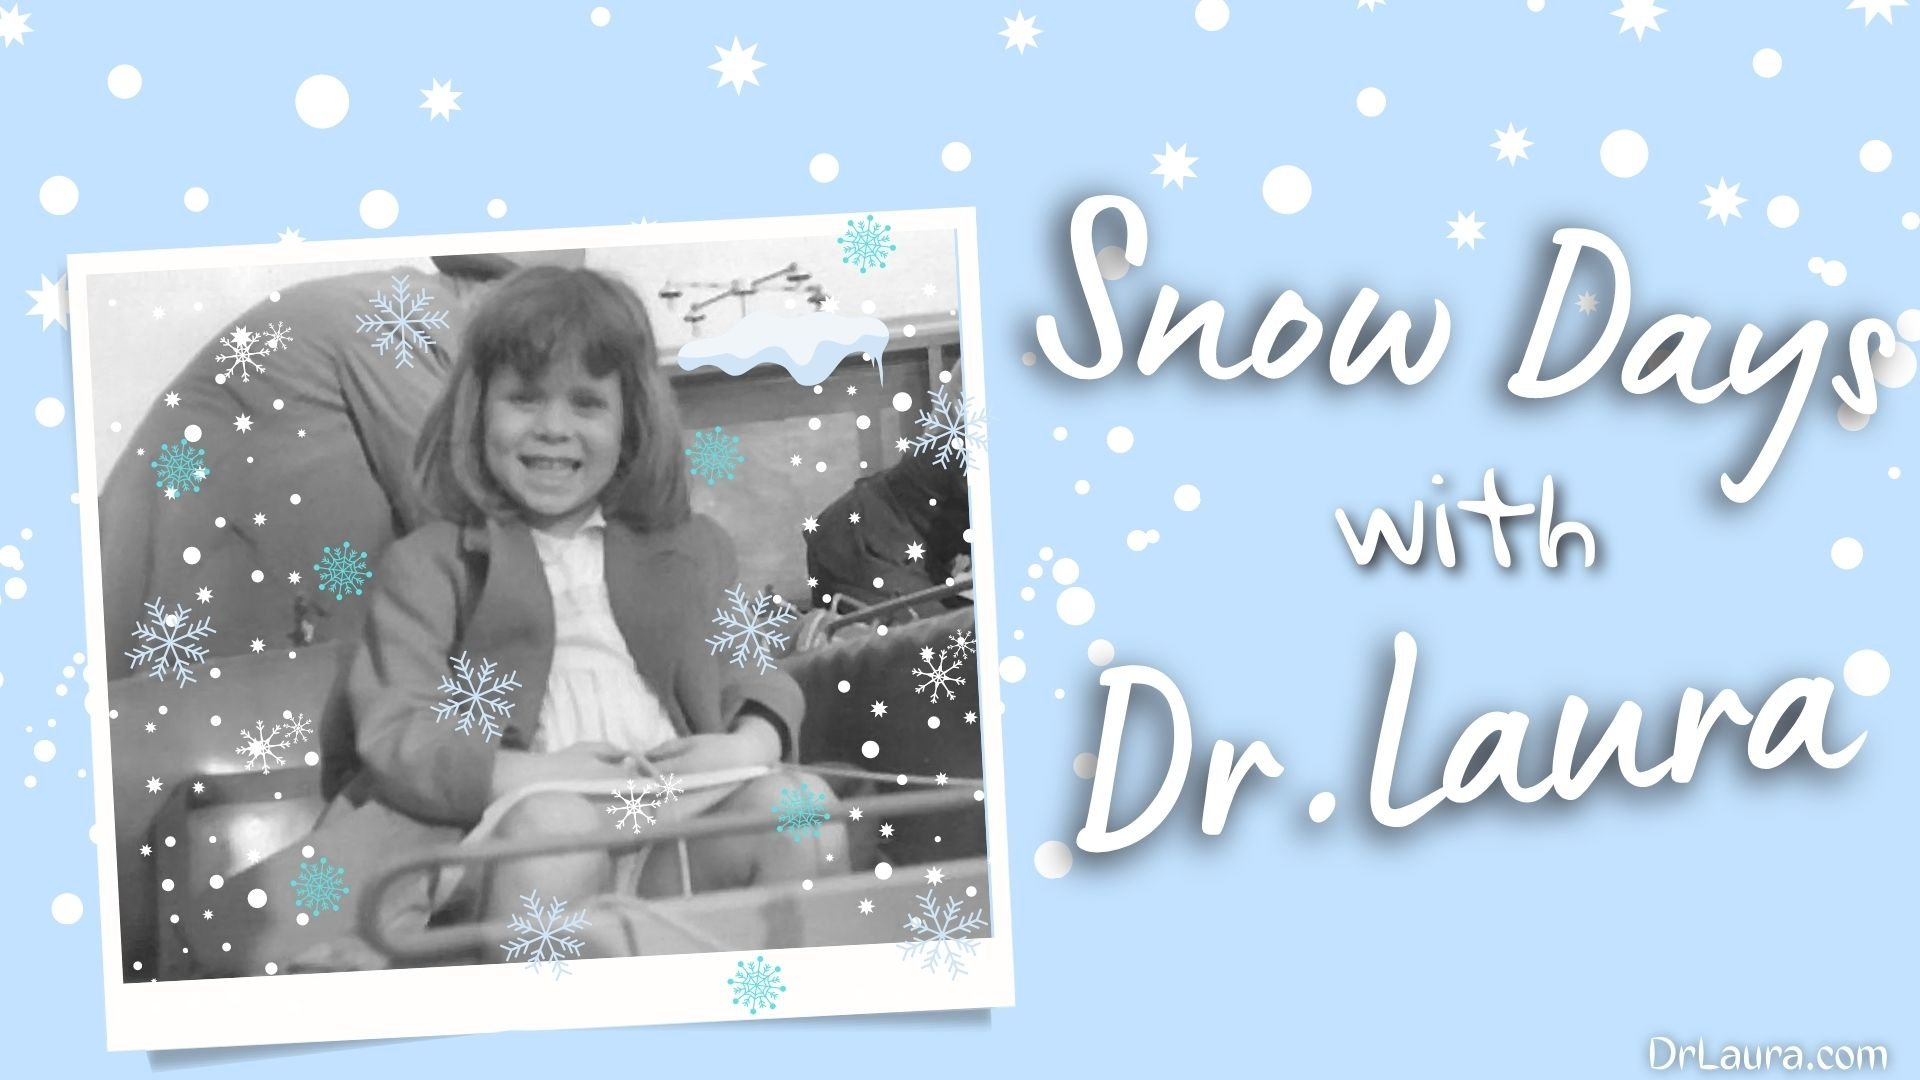 YouTube: Snow Days with Dr. Laura